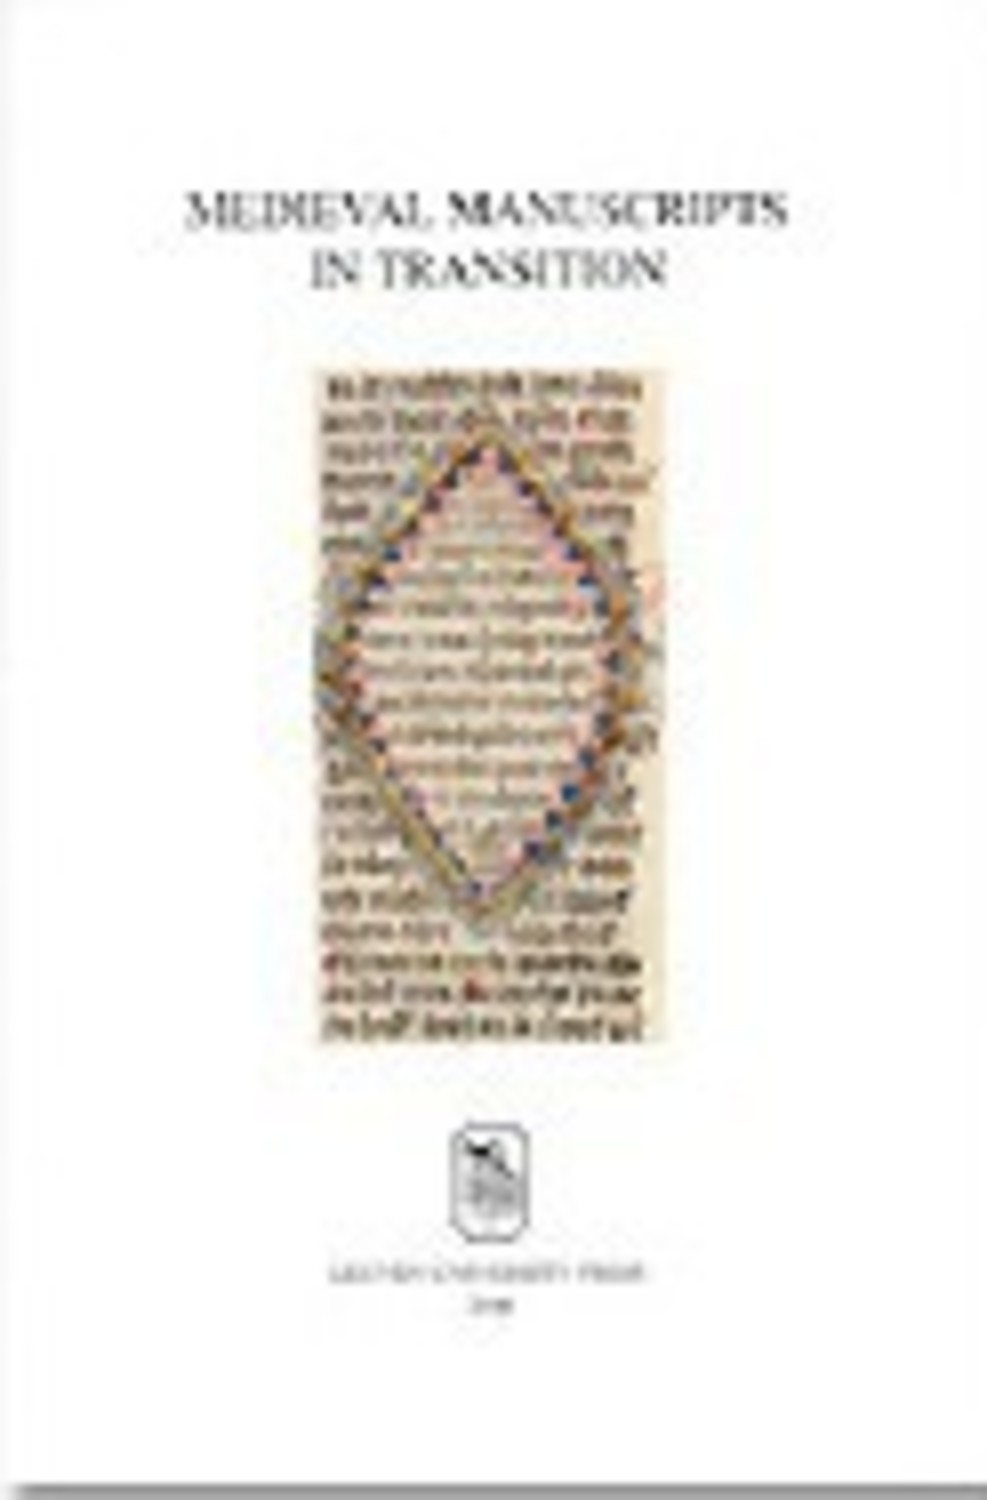 Medieval Manuscripts in Transition